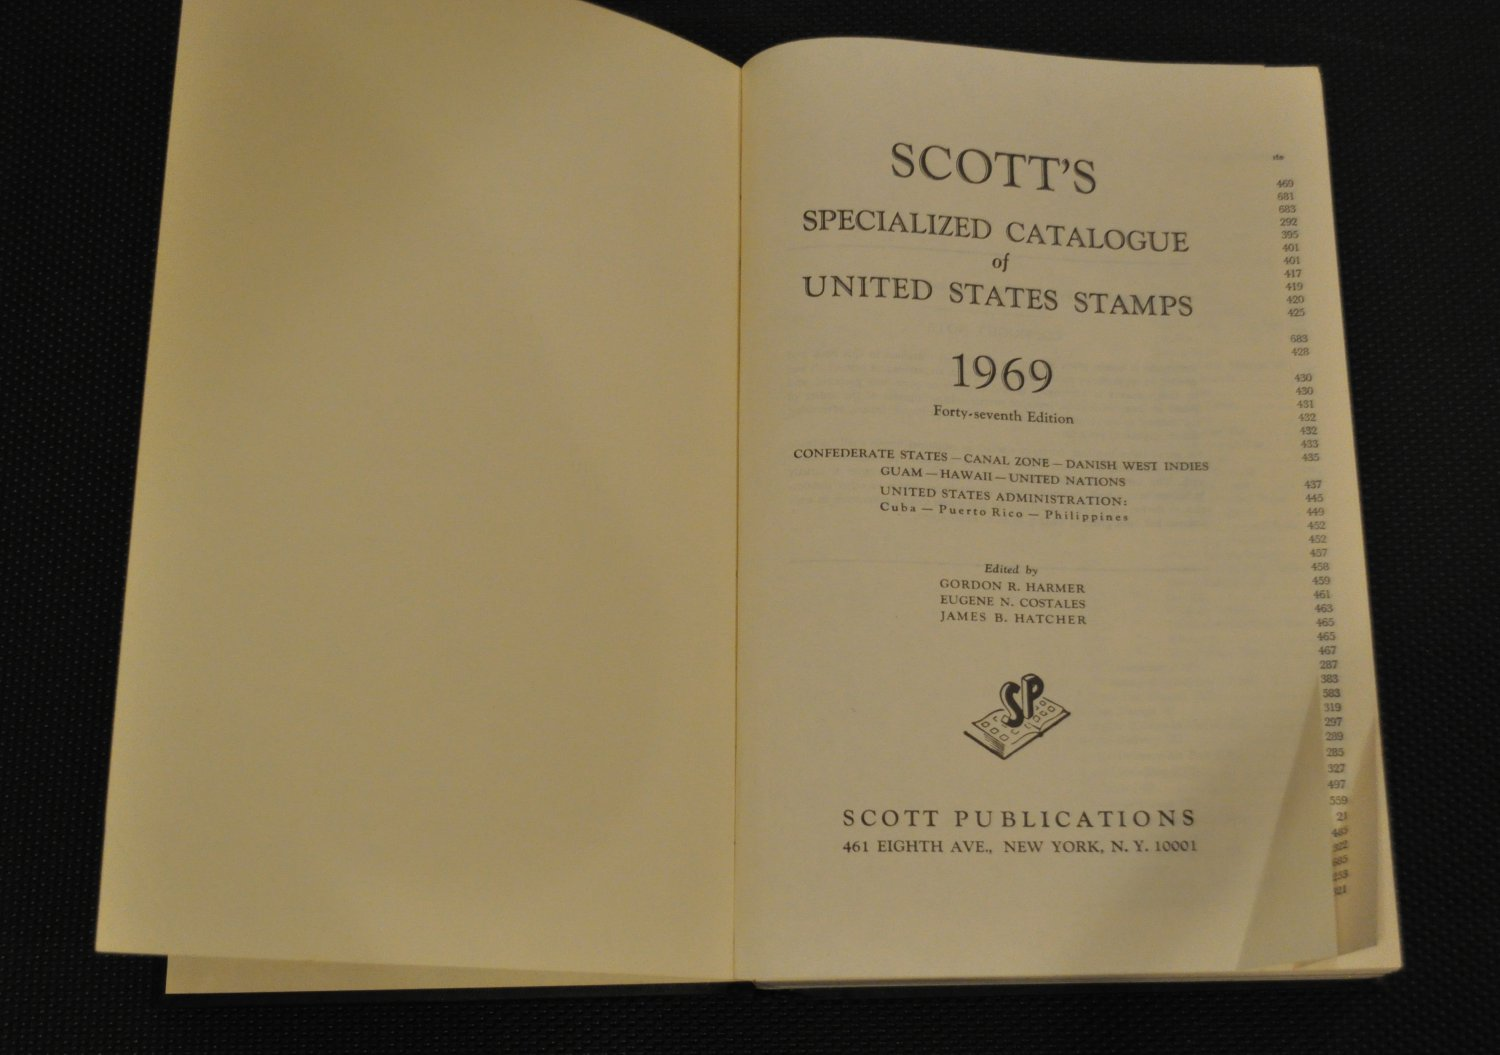 Vintage 1969 Scott's United States Stamp Catalogue Specialized